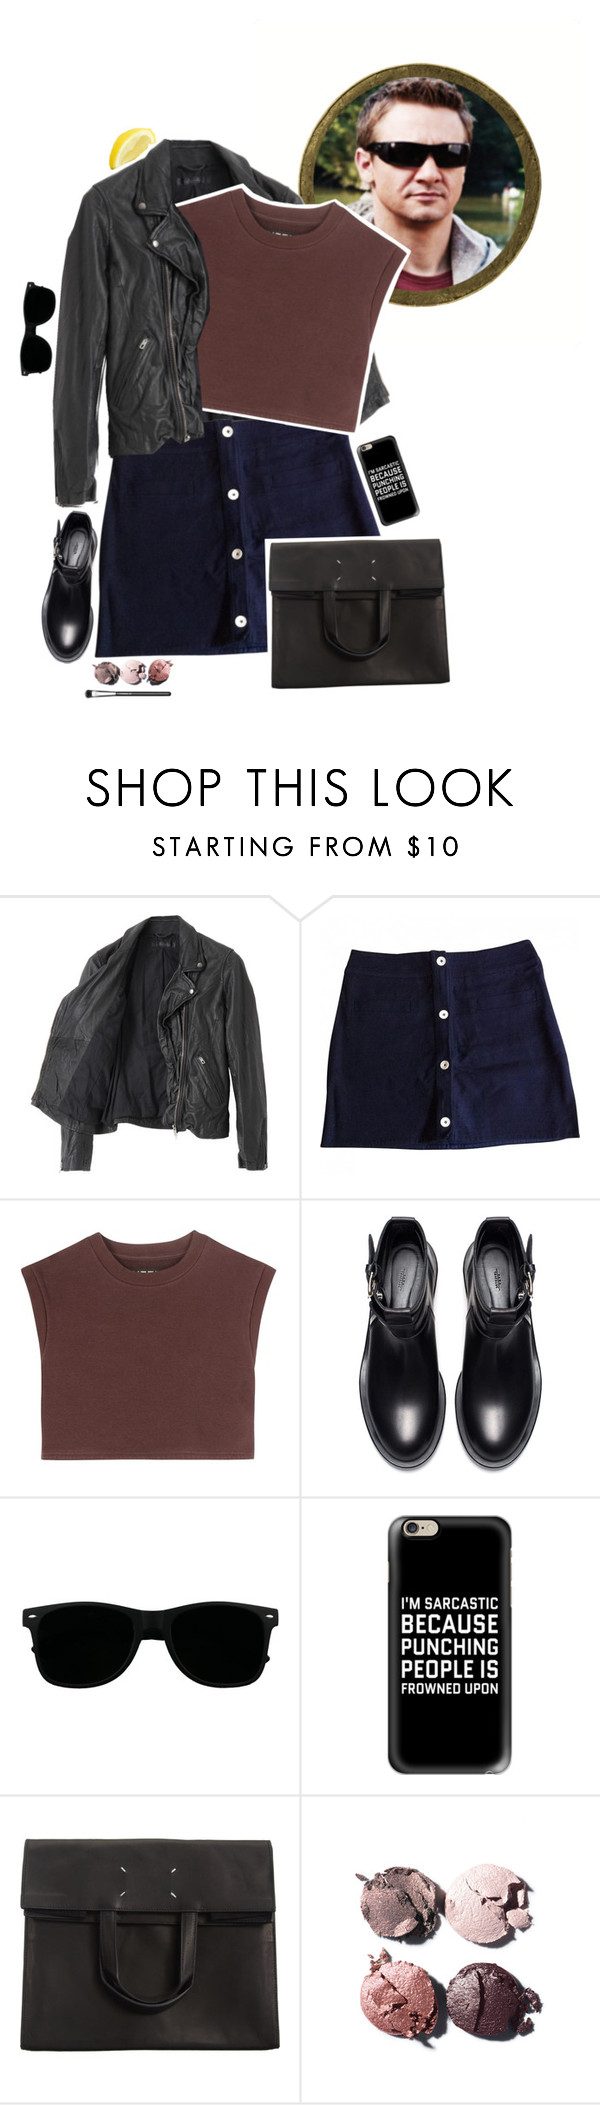 """""""Avengers Summer Style: Hawkeye + Tag"""" by kjvlulu ❤ liked on Polyvore featuring American Rag Cie, Claudie Pierlot, adidas Originals, Zara, Casetify, Maison Margiela, Chanel, MAC Cosmetics and bedroom"""